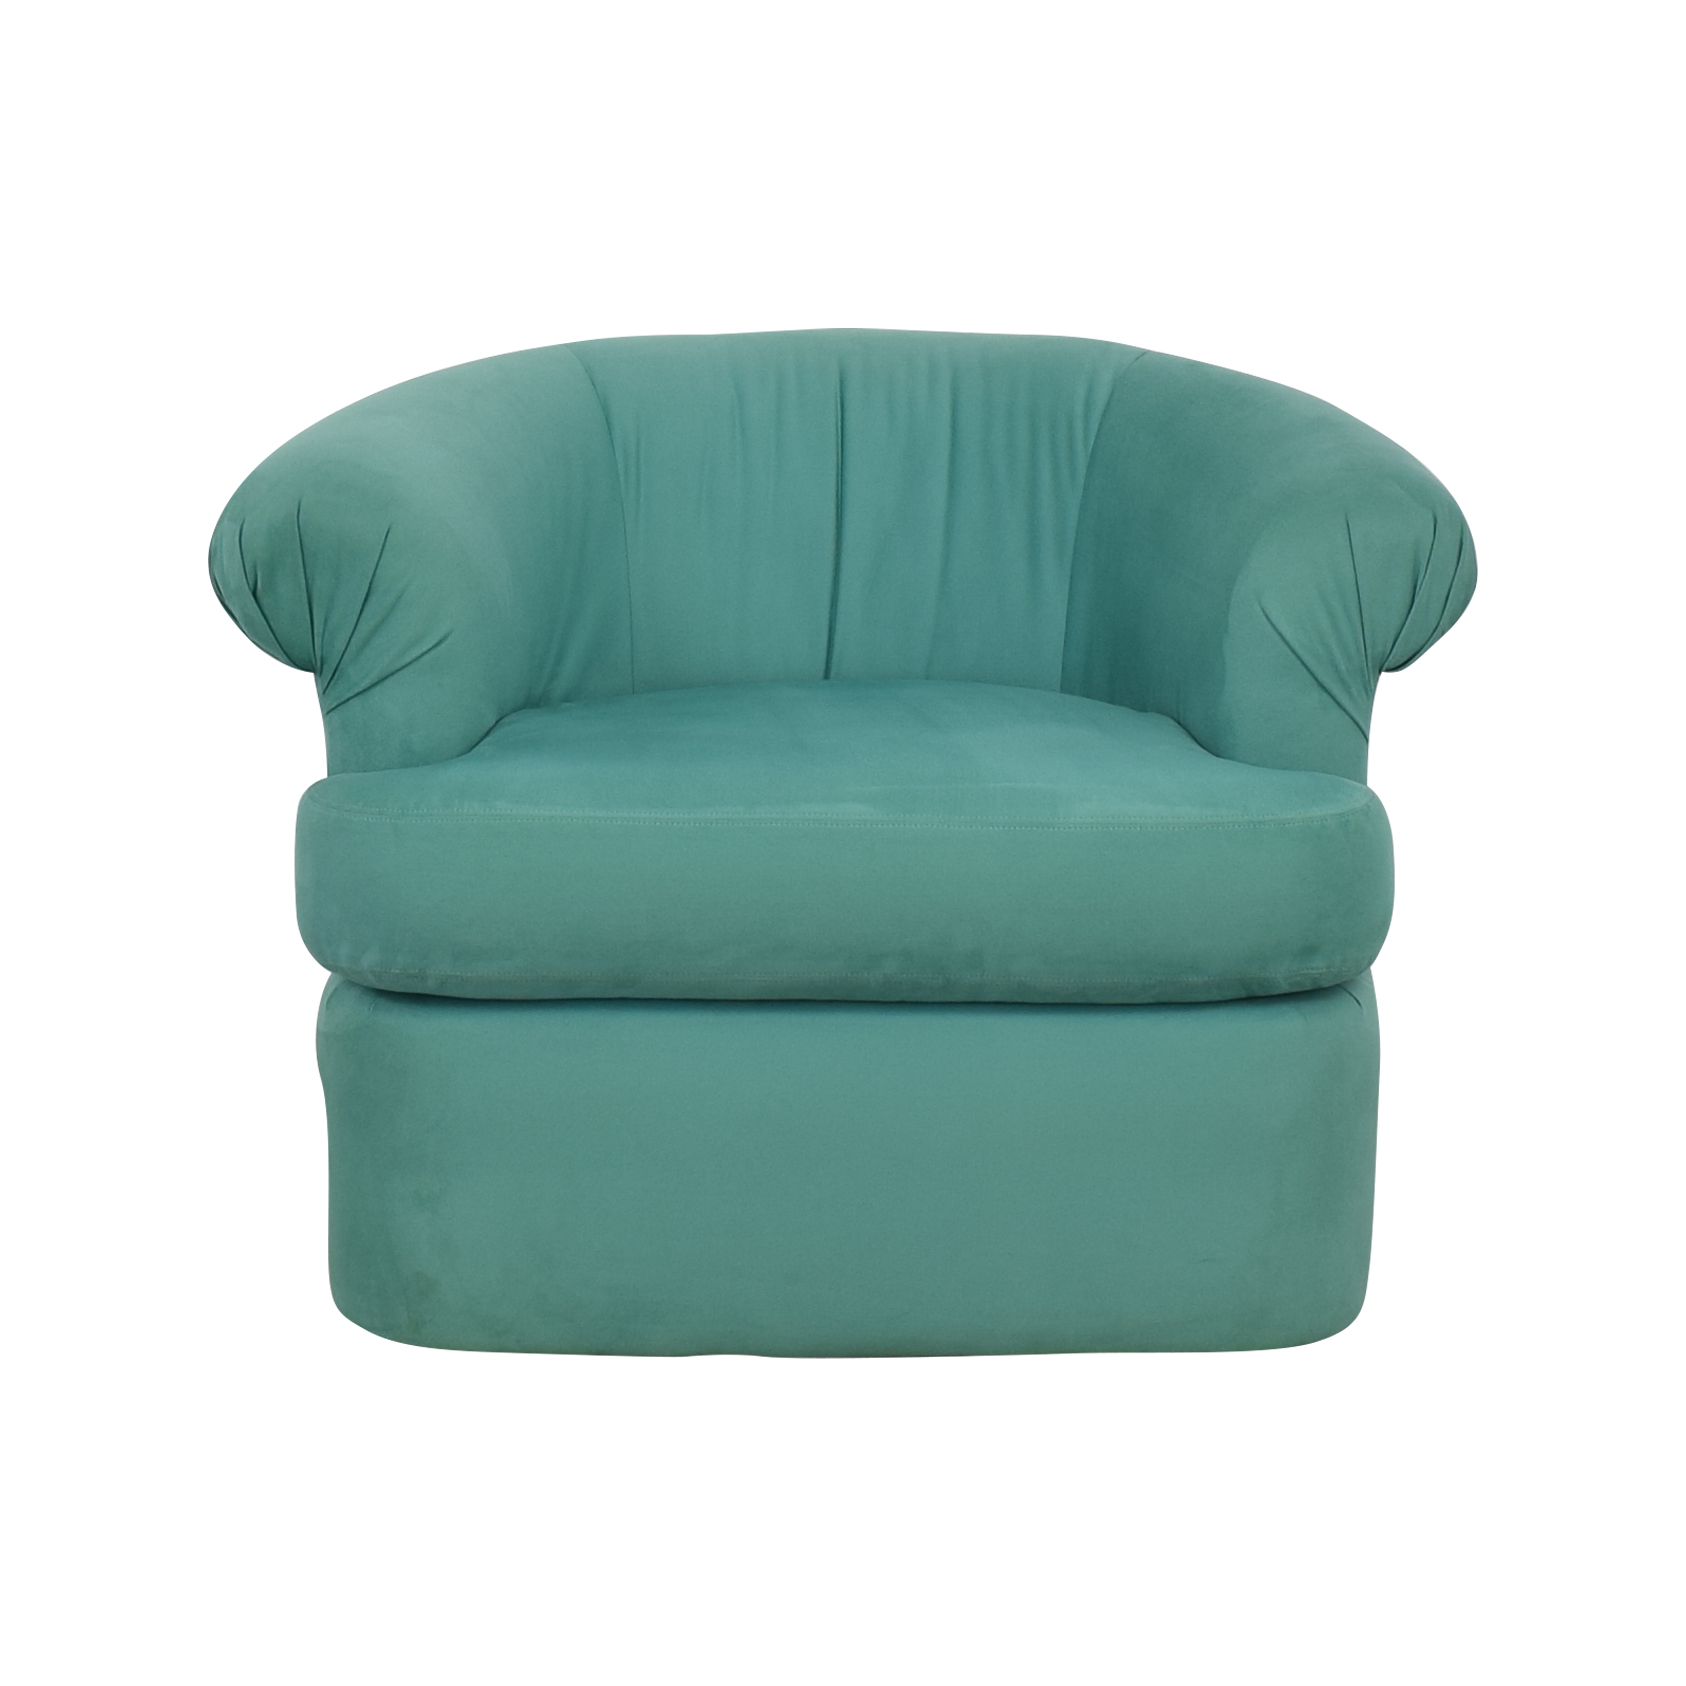 Directional Furniture Directional Furniture Suede Chair Accent Chairs